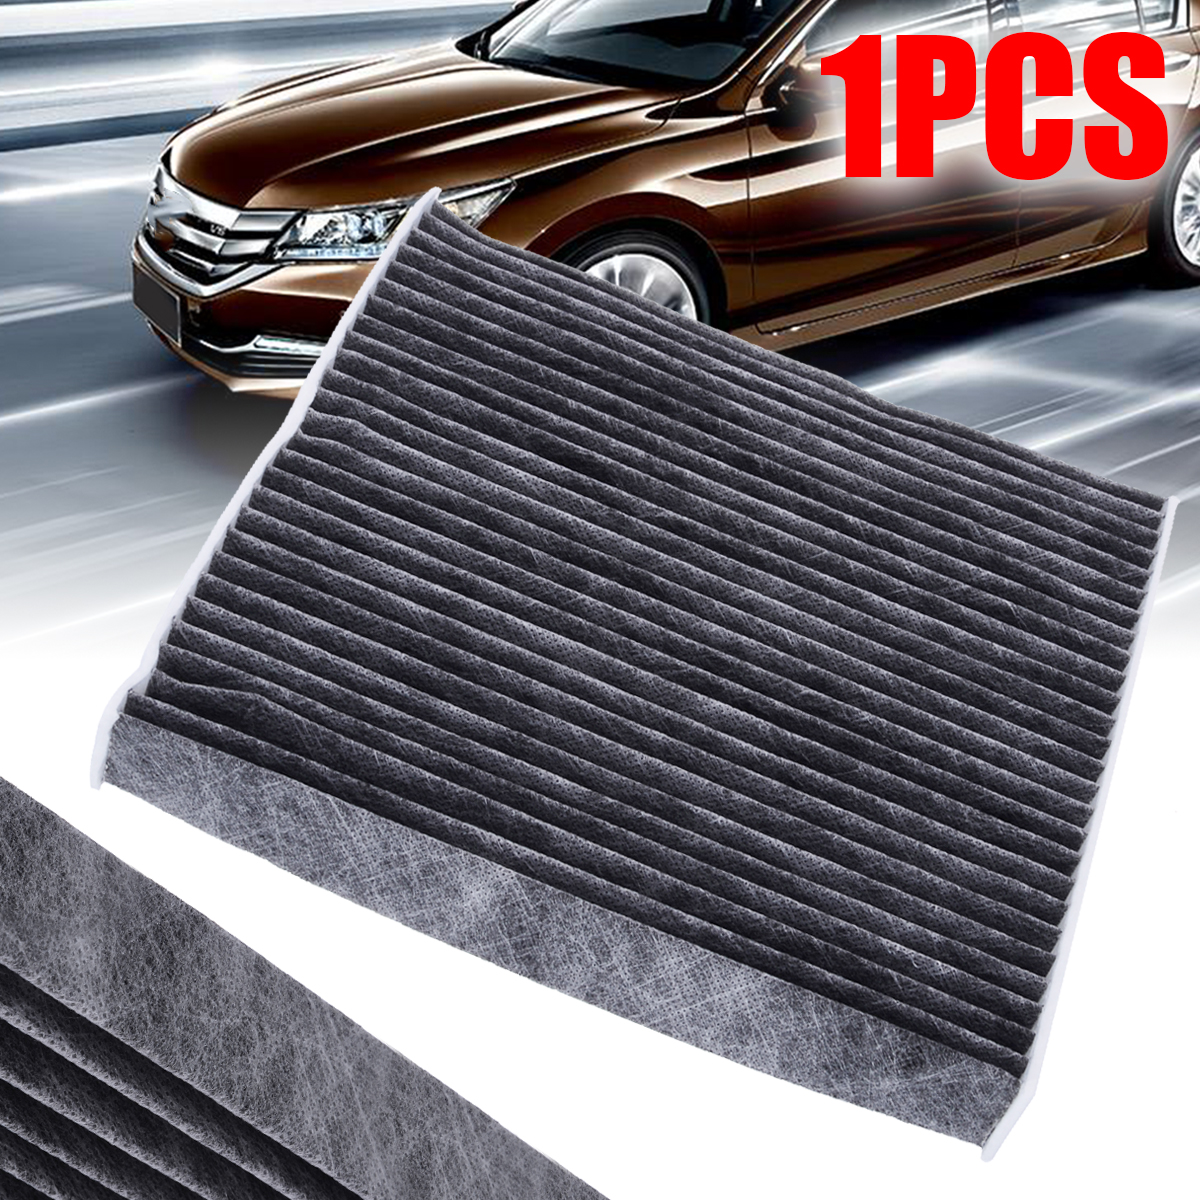 New Arrival 1pc Non-woven Cabin Fiber Air Filter For Honda Accord Civic CRV Odyssey Pilot 80292-TZ5-A41New Arrival 1pc Non-woven Cabin Fiber Air Filter For Honda Accord Civic CRV Odyssey Pilot 80292-TZ5-A41